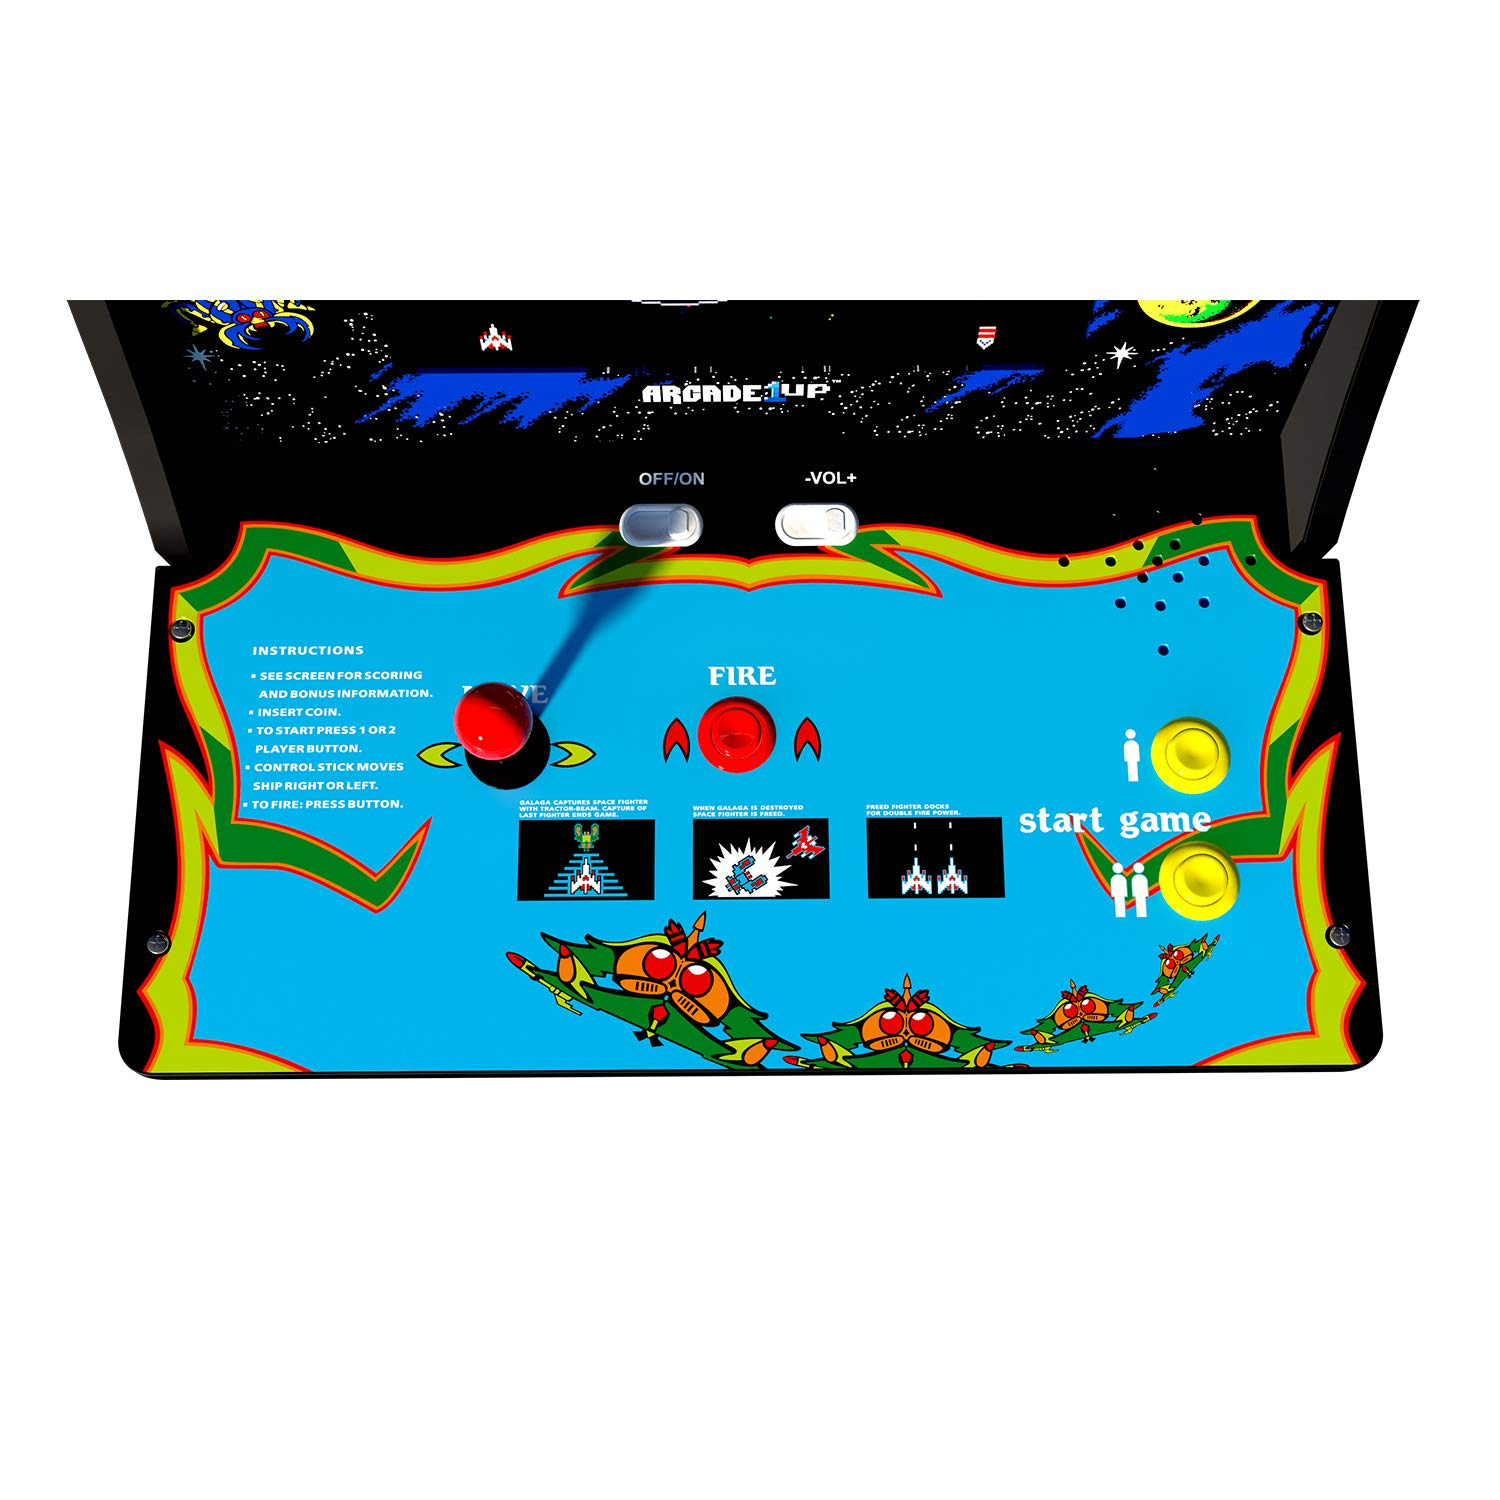 Arcade 1Up Galaga Deluxe Arcade System with Riser, 5 feet by Arcade1Up (Image #2)